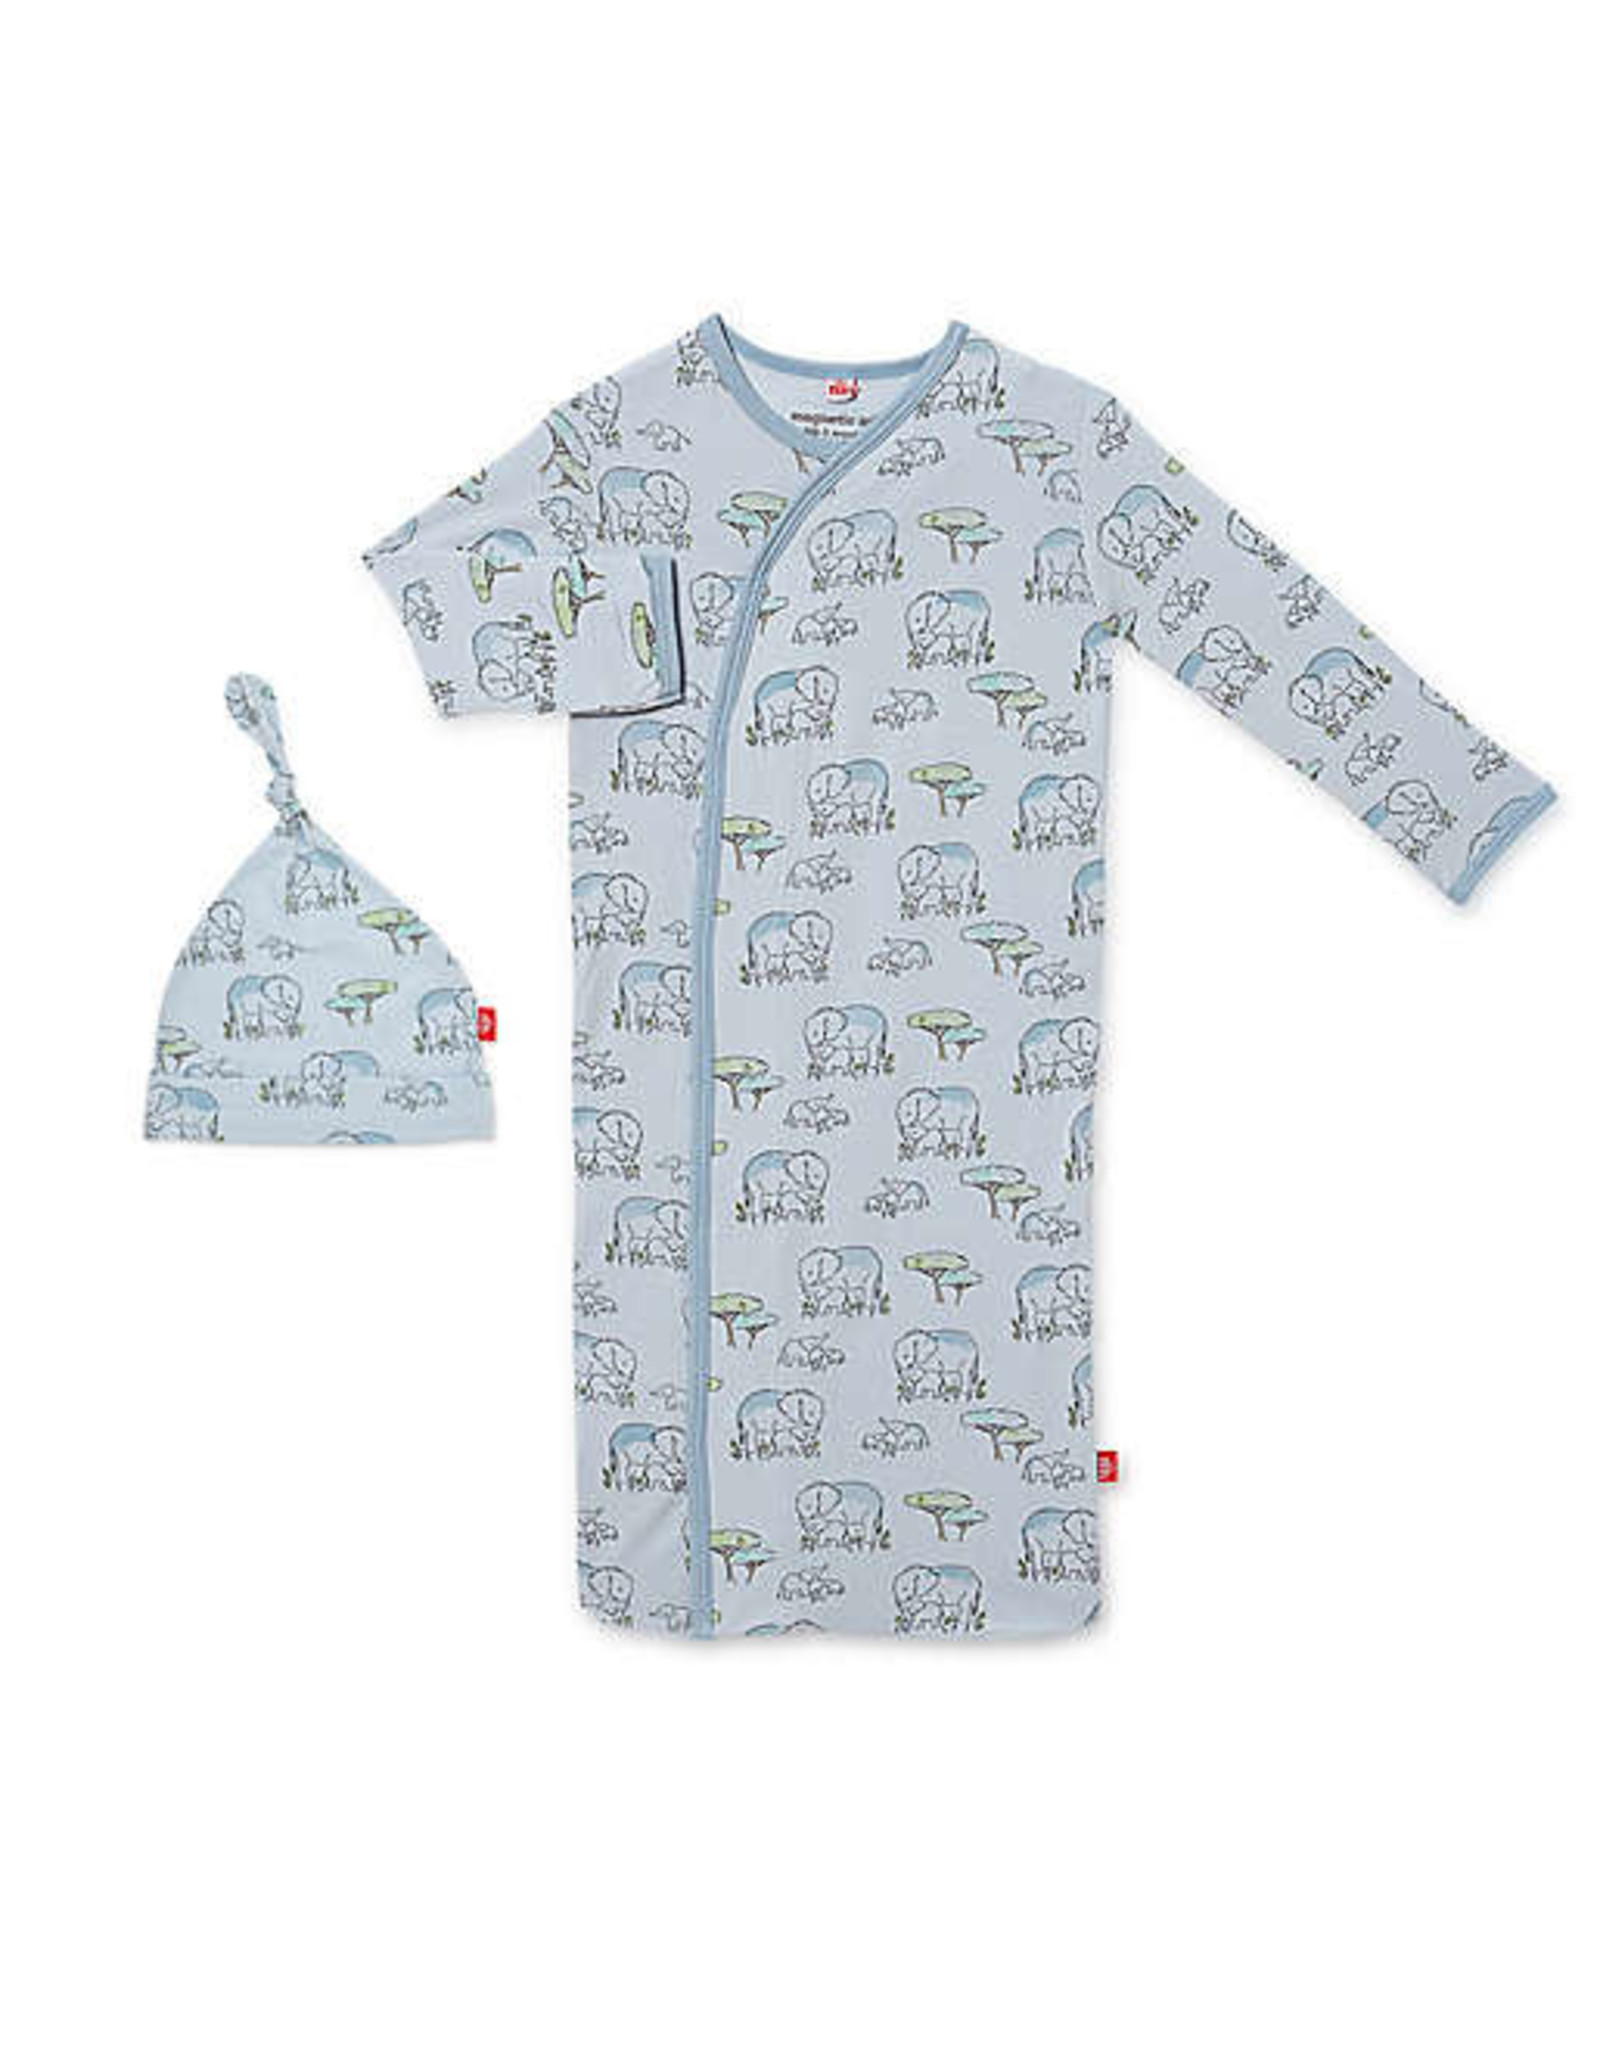 Magnetic Me Magnetic Me- Blue Love You A Ton Modal Magnetic Gown Set (NB-3M)